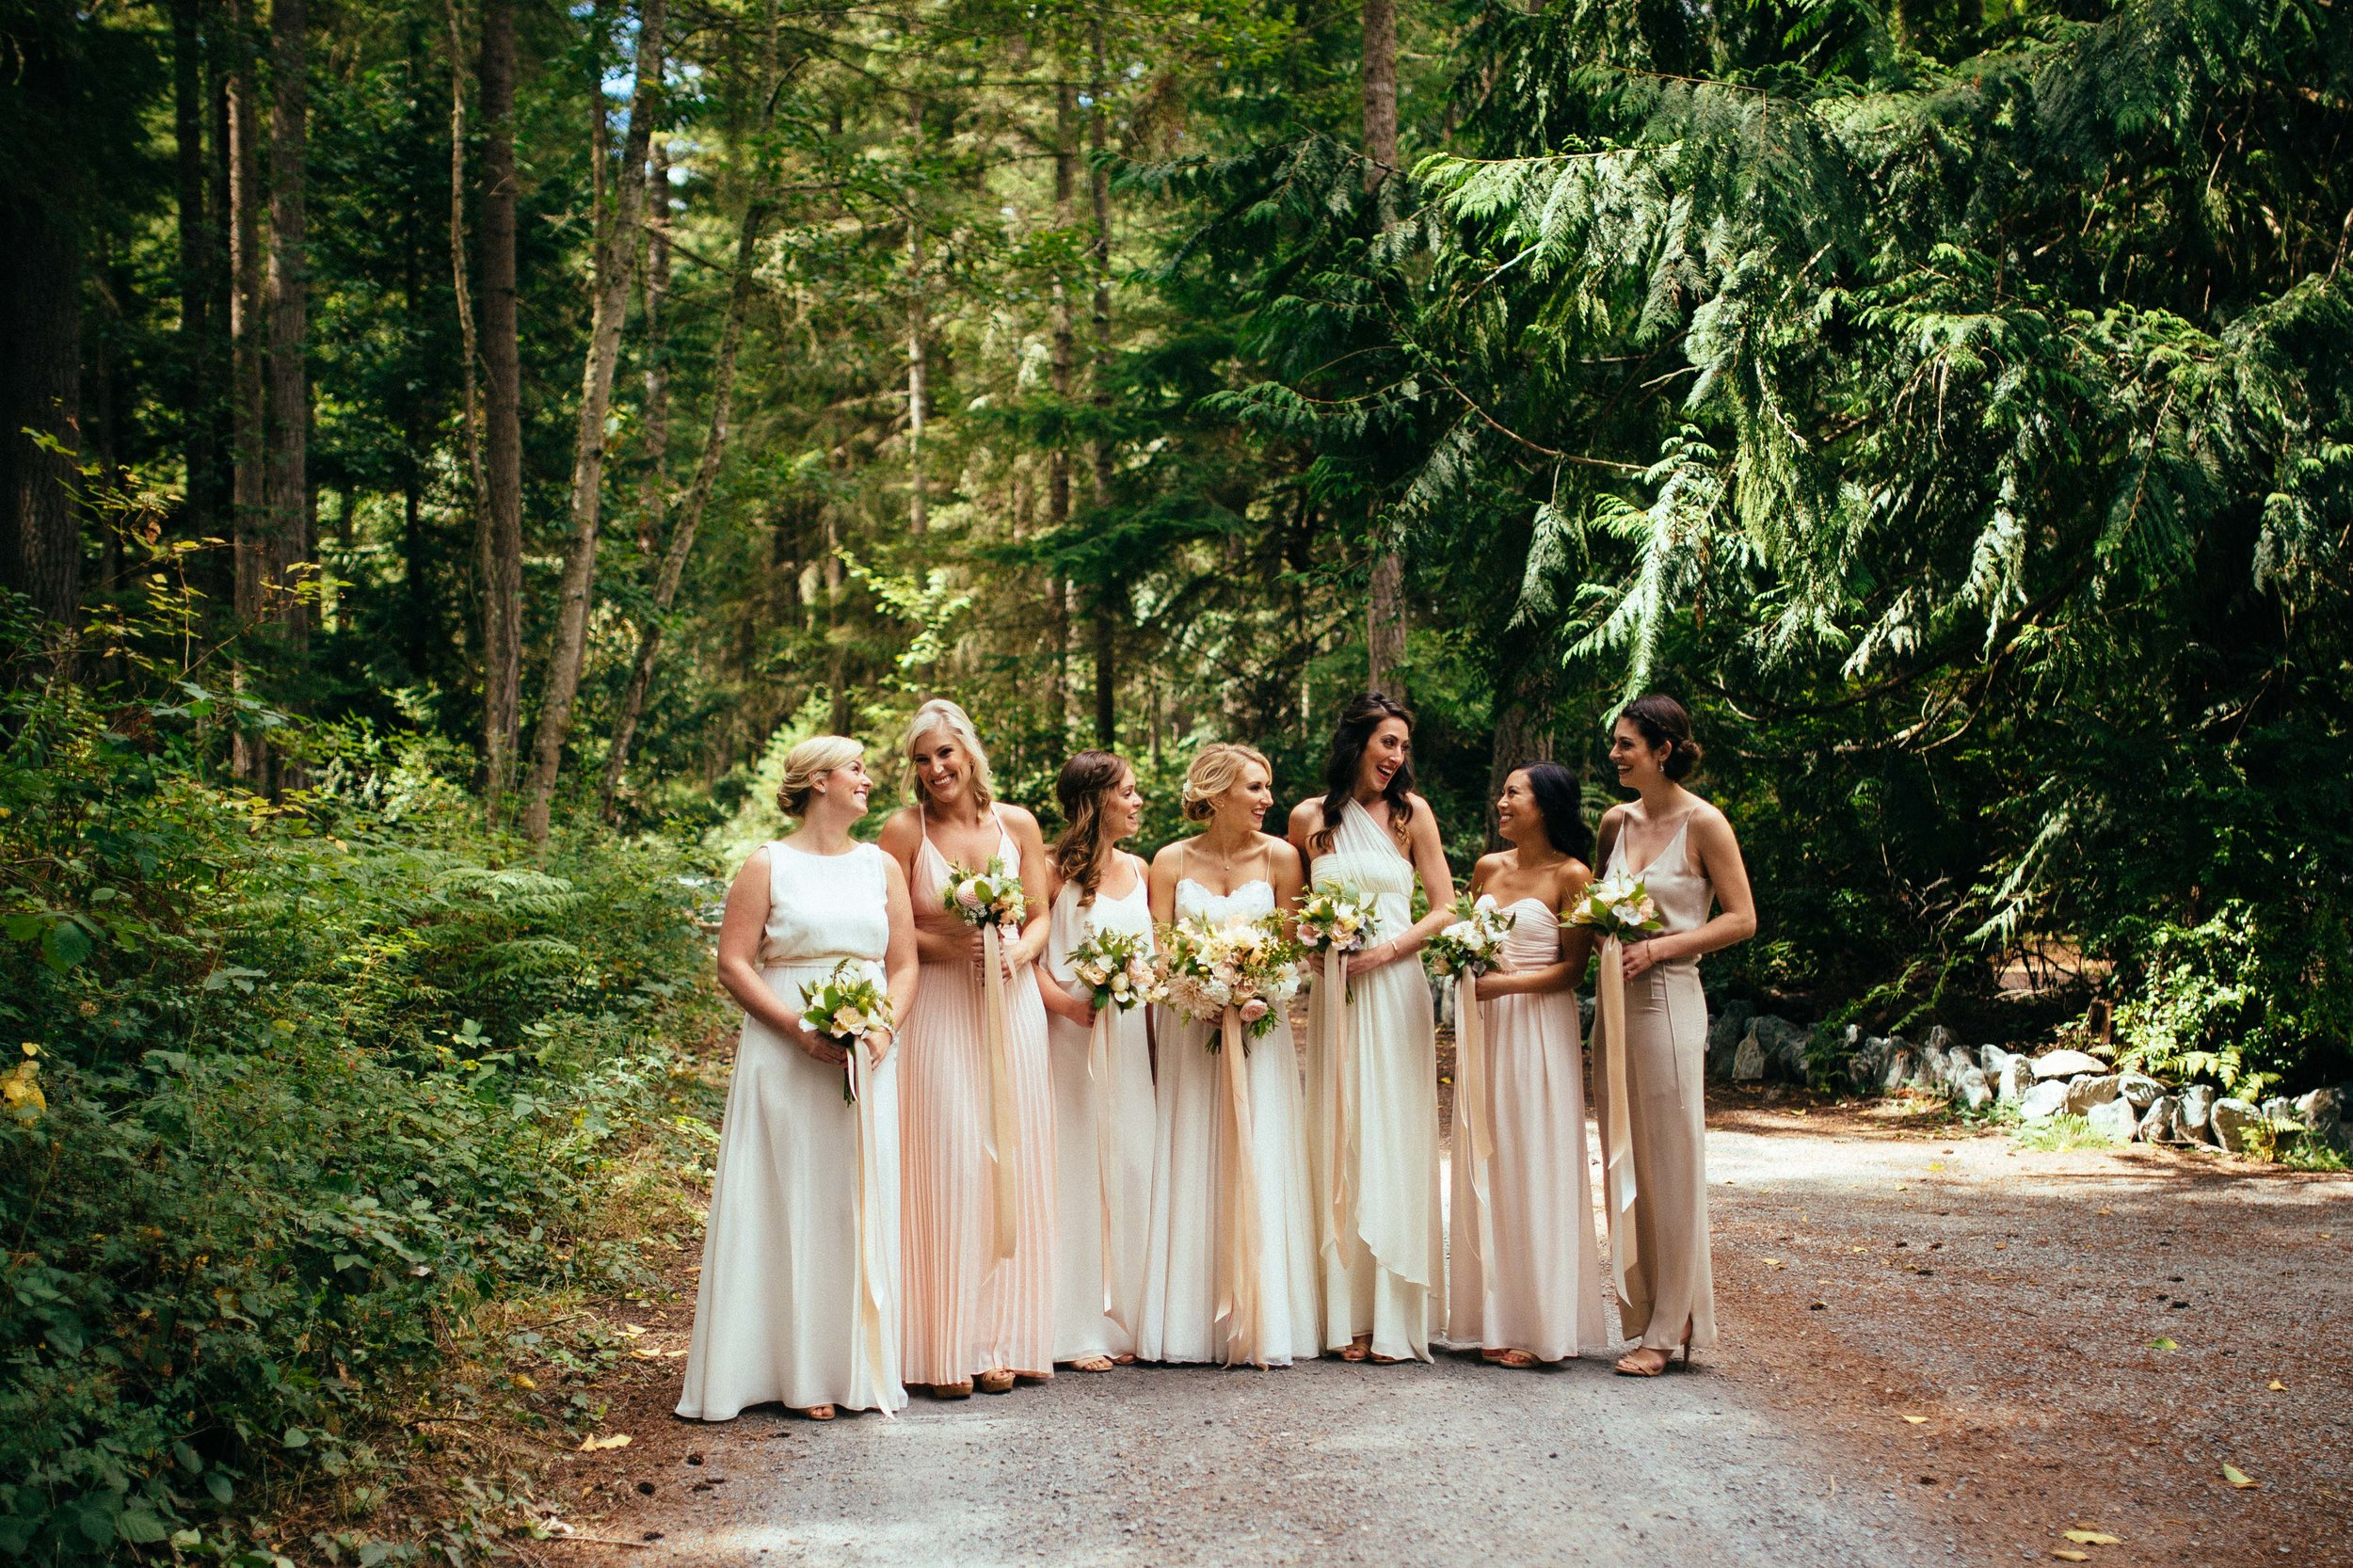 Seattle-Wedding-Videography-Photography-Newly-Films-Firesed-Catering-IMG_0018.jpg